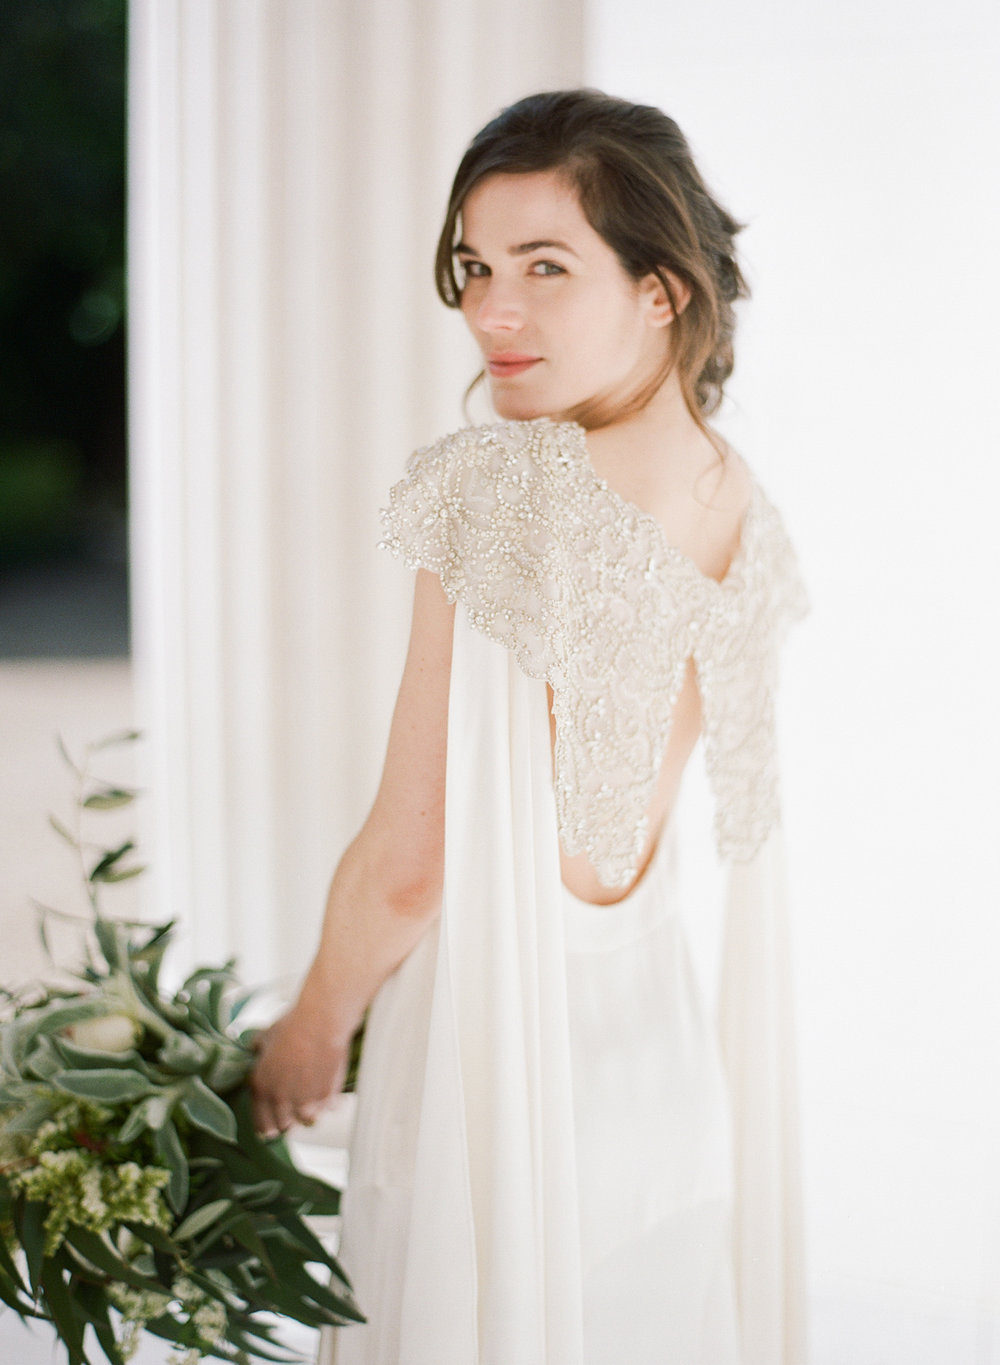 Cortana wedding gown with shoulder capes and a sequin embroidered bolero - vintage French style; Sylvie Gil Photography